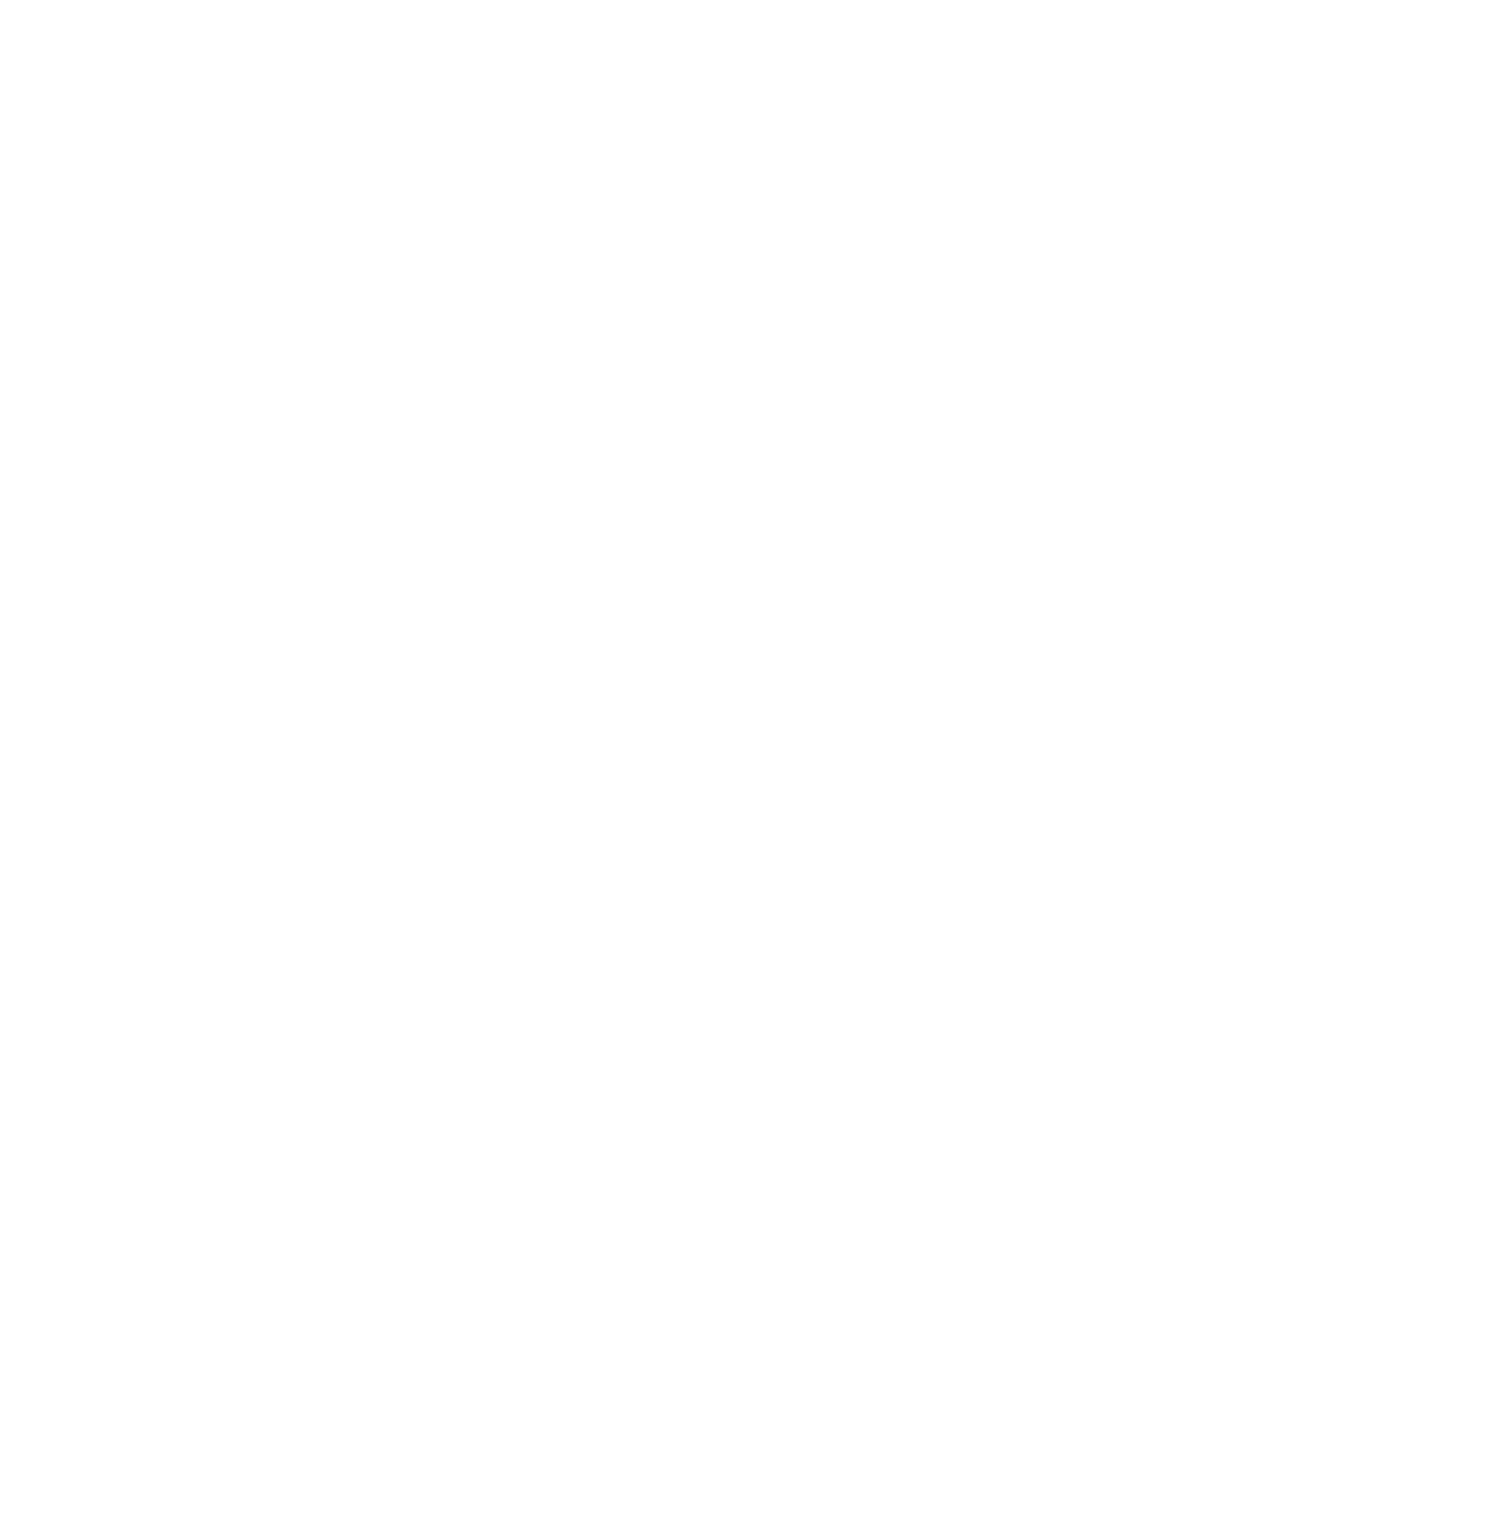 Aurora Granite Creations